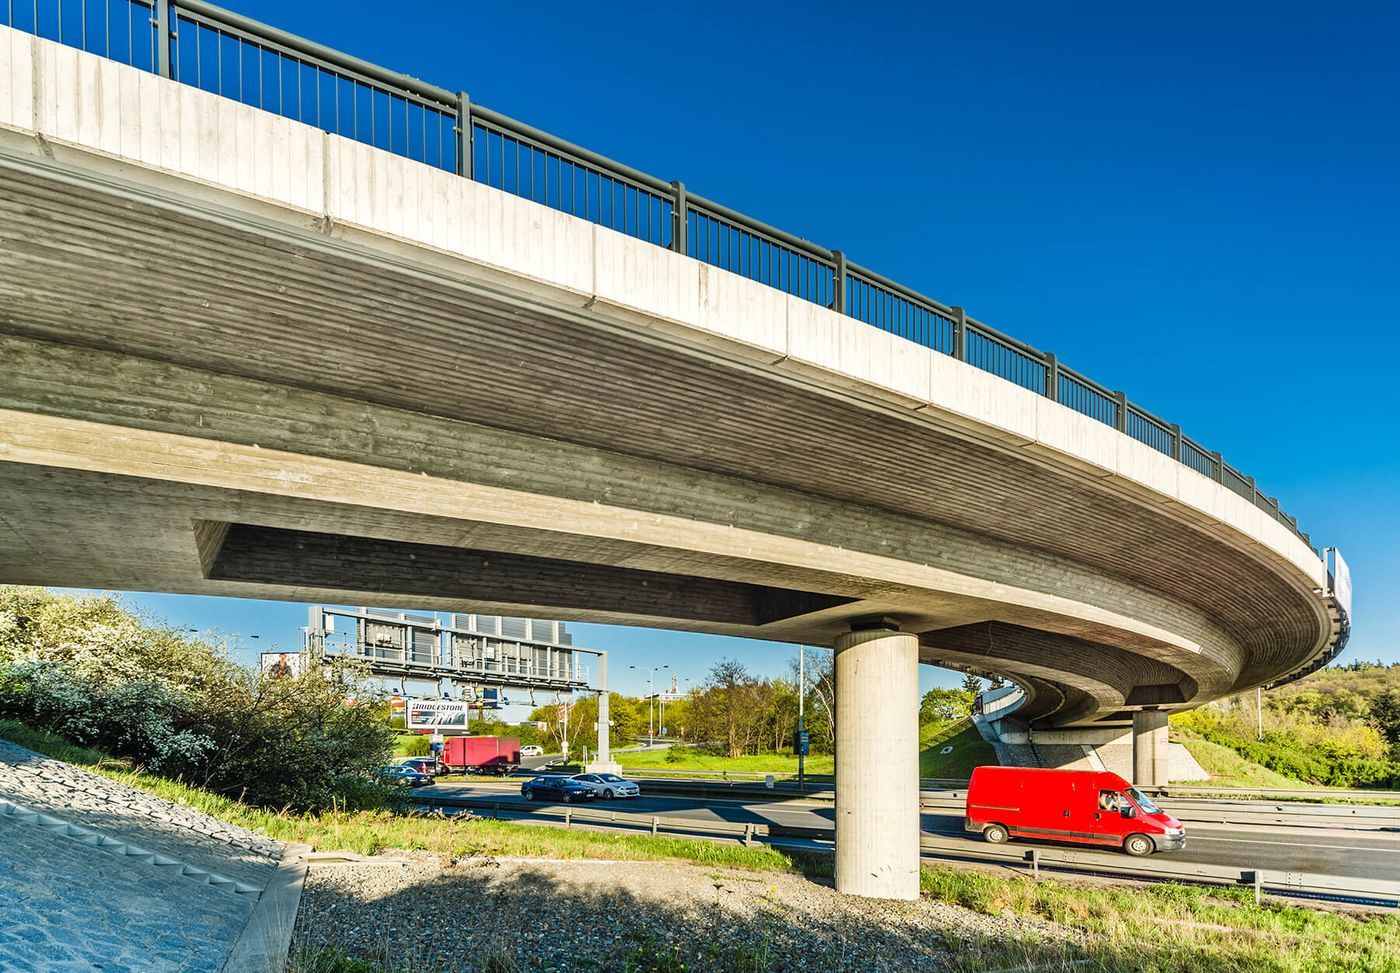 Photo: concrete bridge from below; underneath, a multi-lane motorway with vehicle traffic